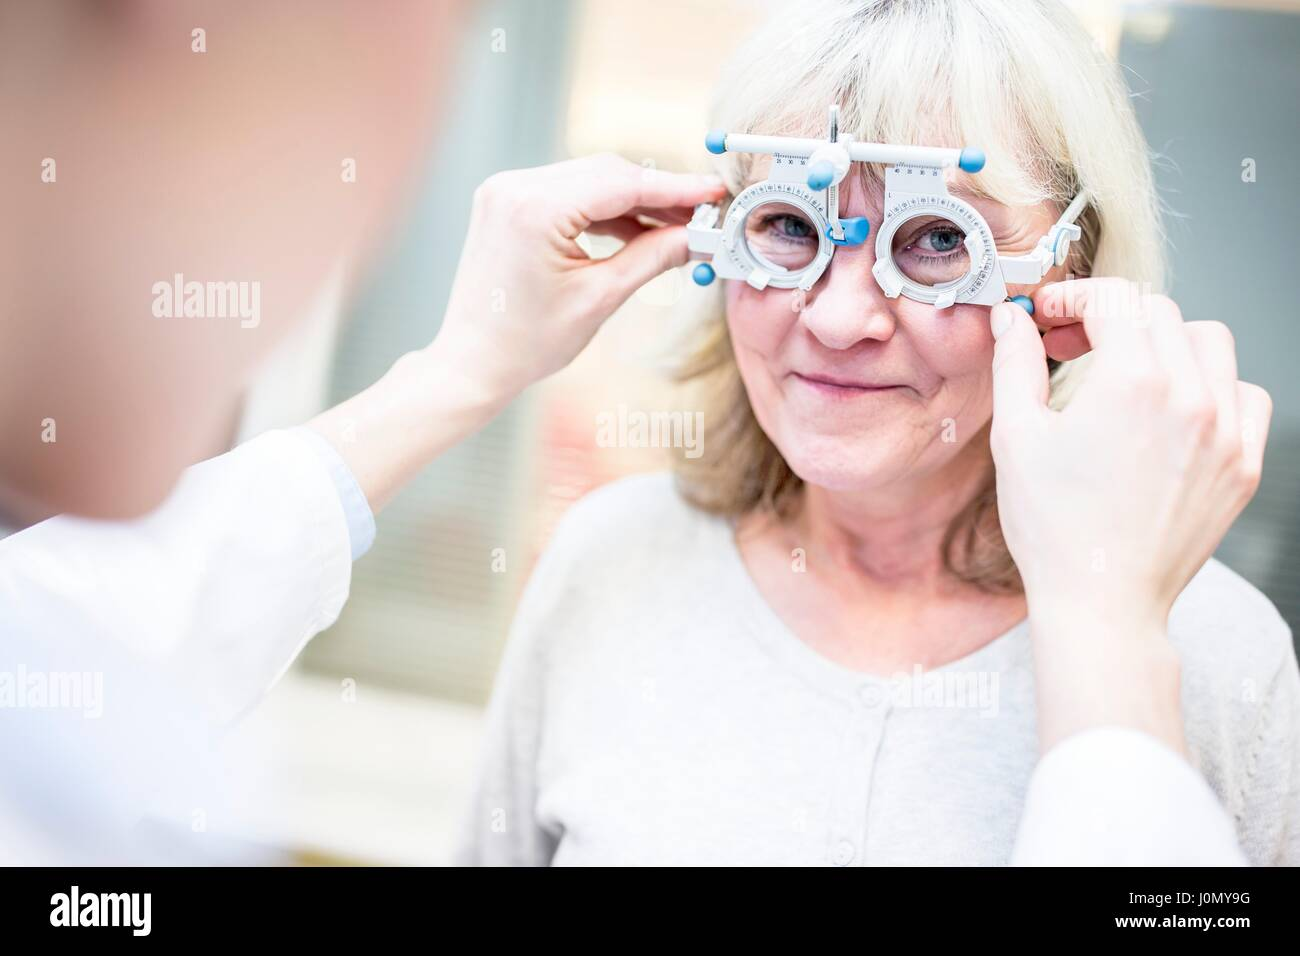 Senior donna con esame visivo da all'ottico optometrista. Foto Stock